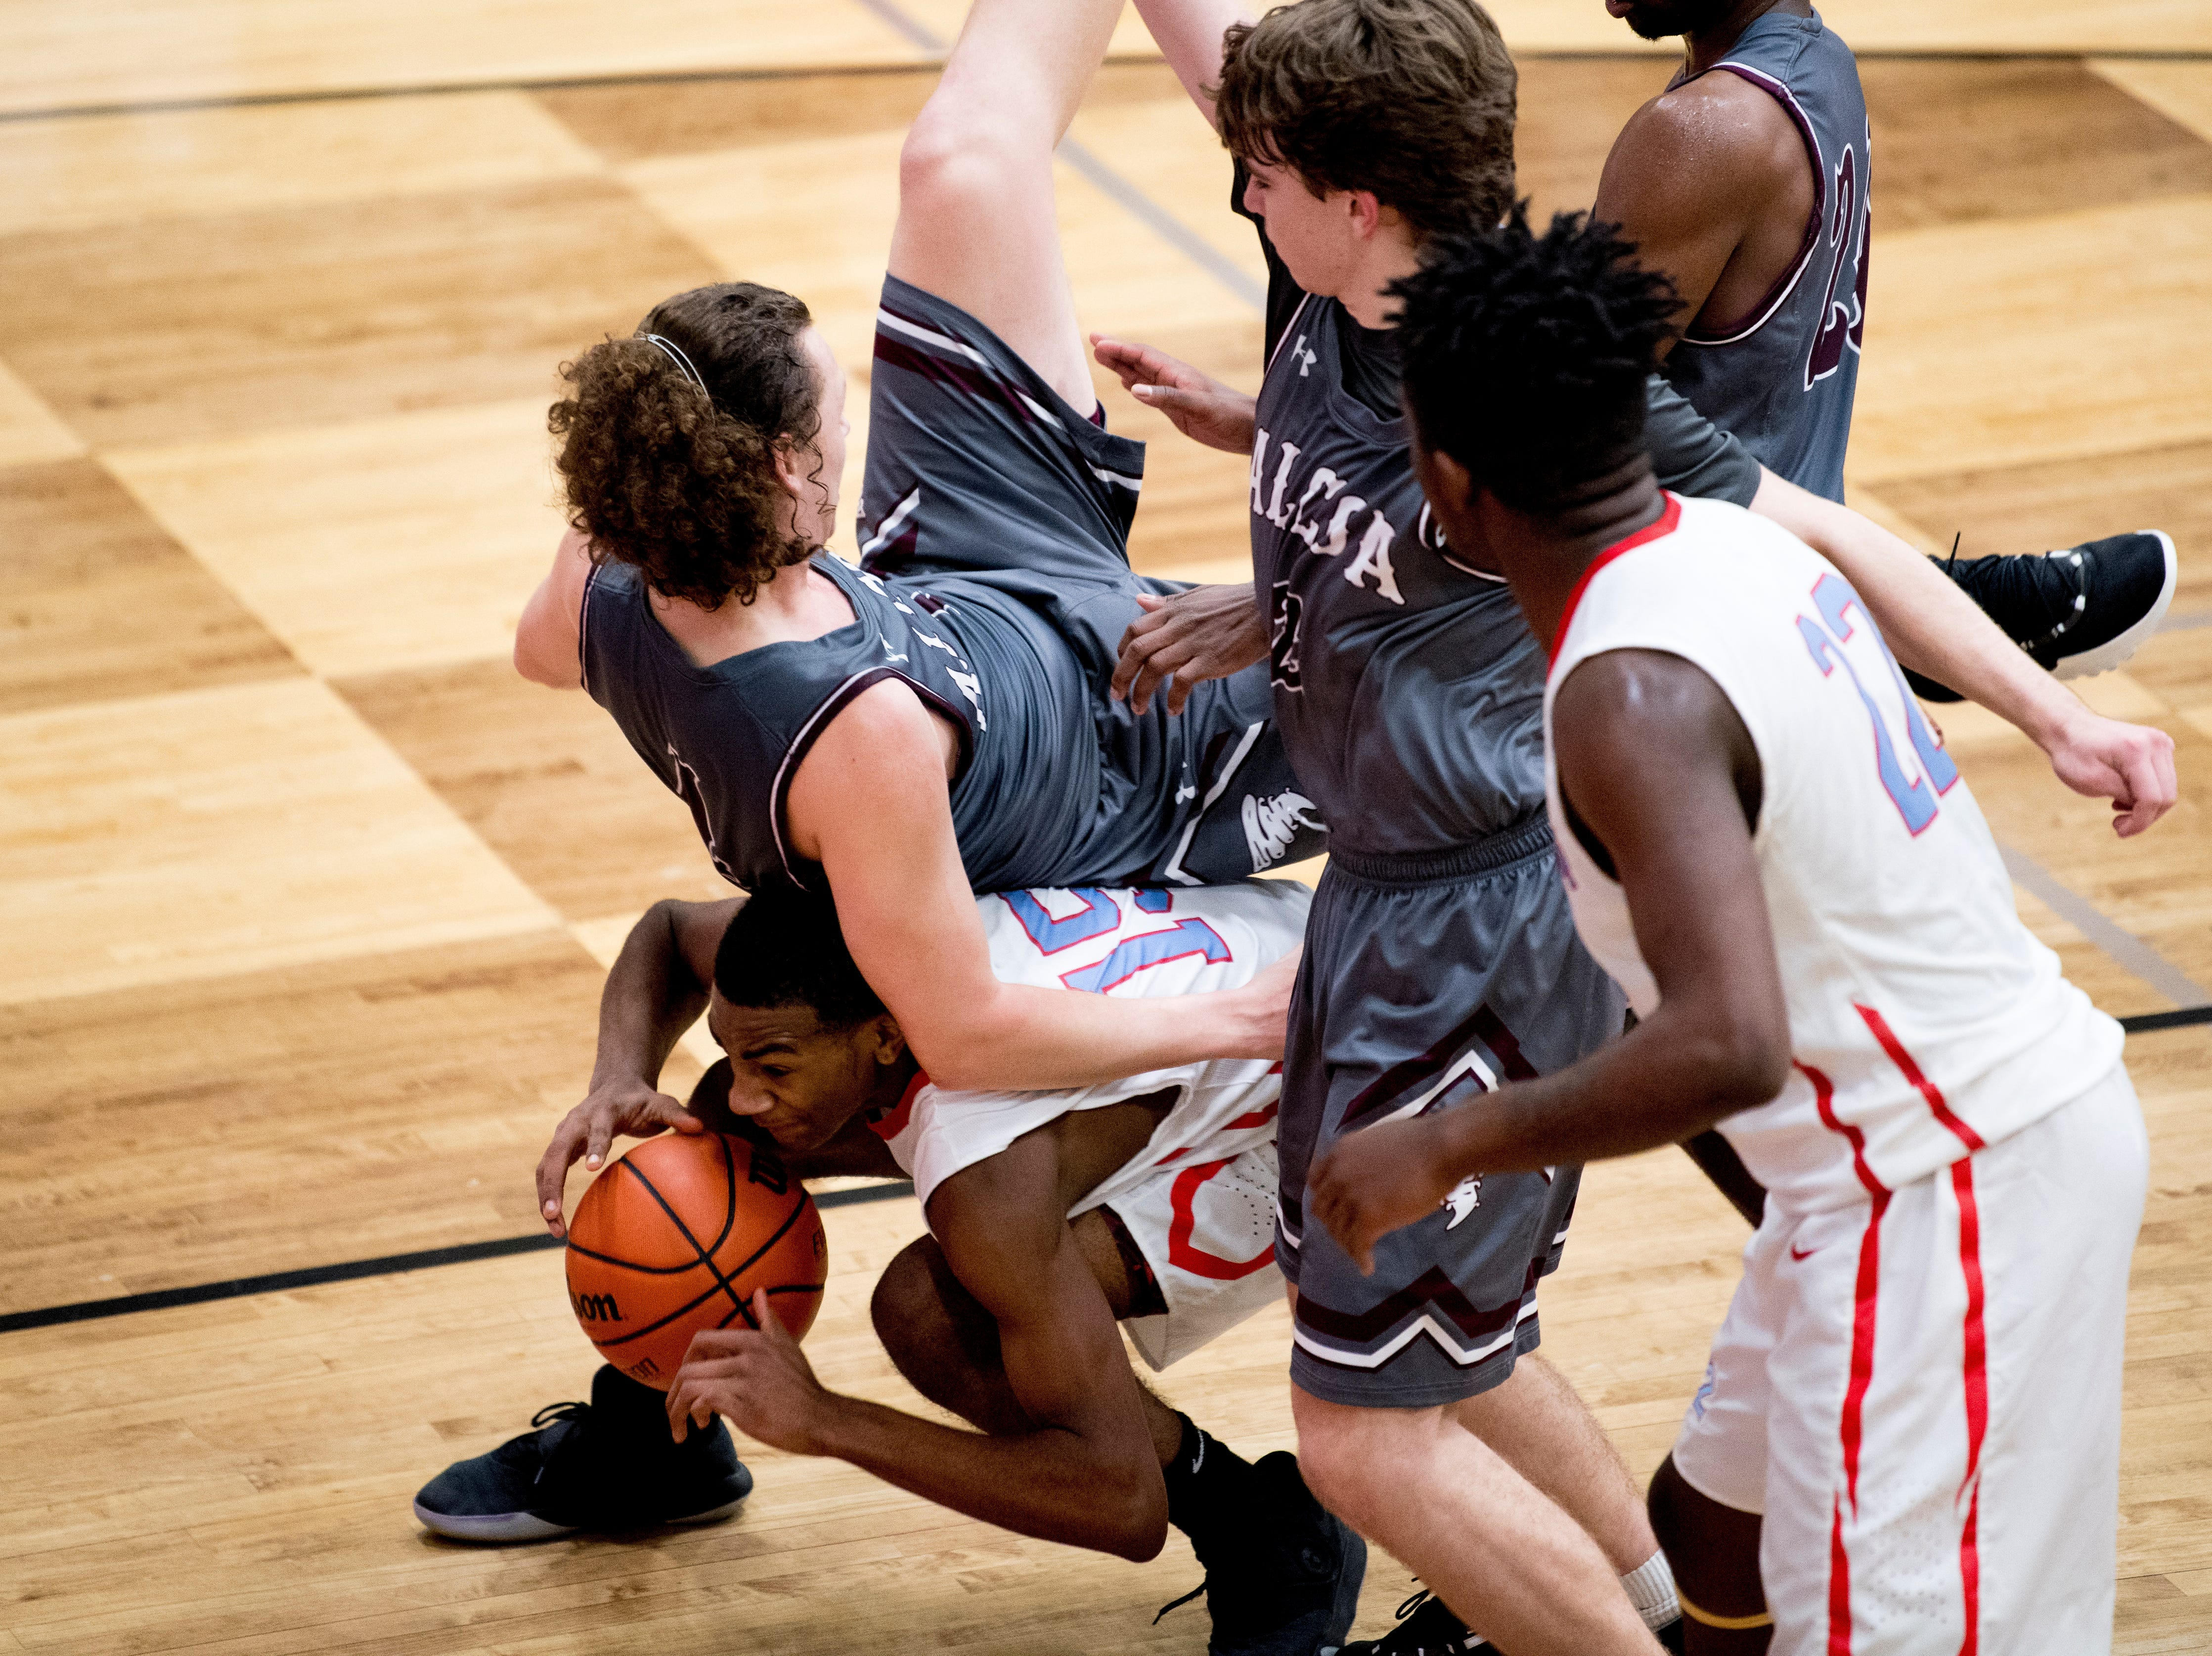 Alcoa's Nick Roberts (4) falls atop Austin-East's Ka'Juan Bullard (15) during a game between Austin-East and Alcoa at Austin-East High School in Knoxville, Tennessee on Friday, January 18, 2019.